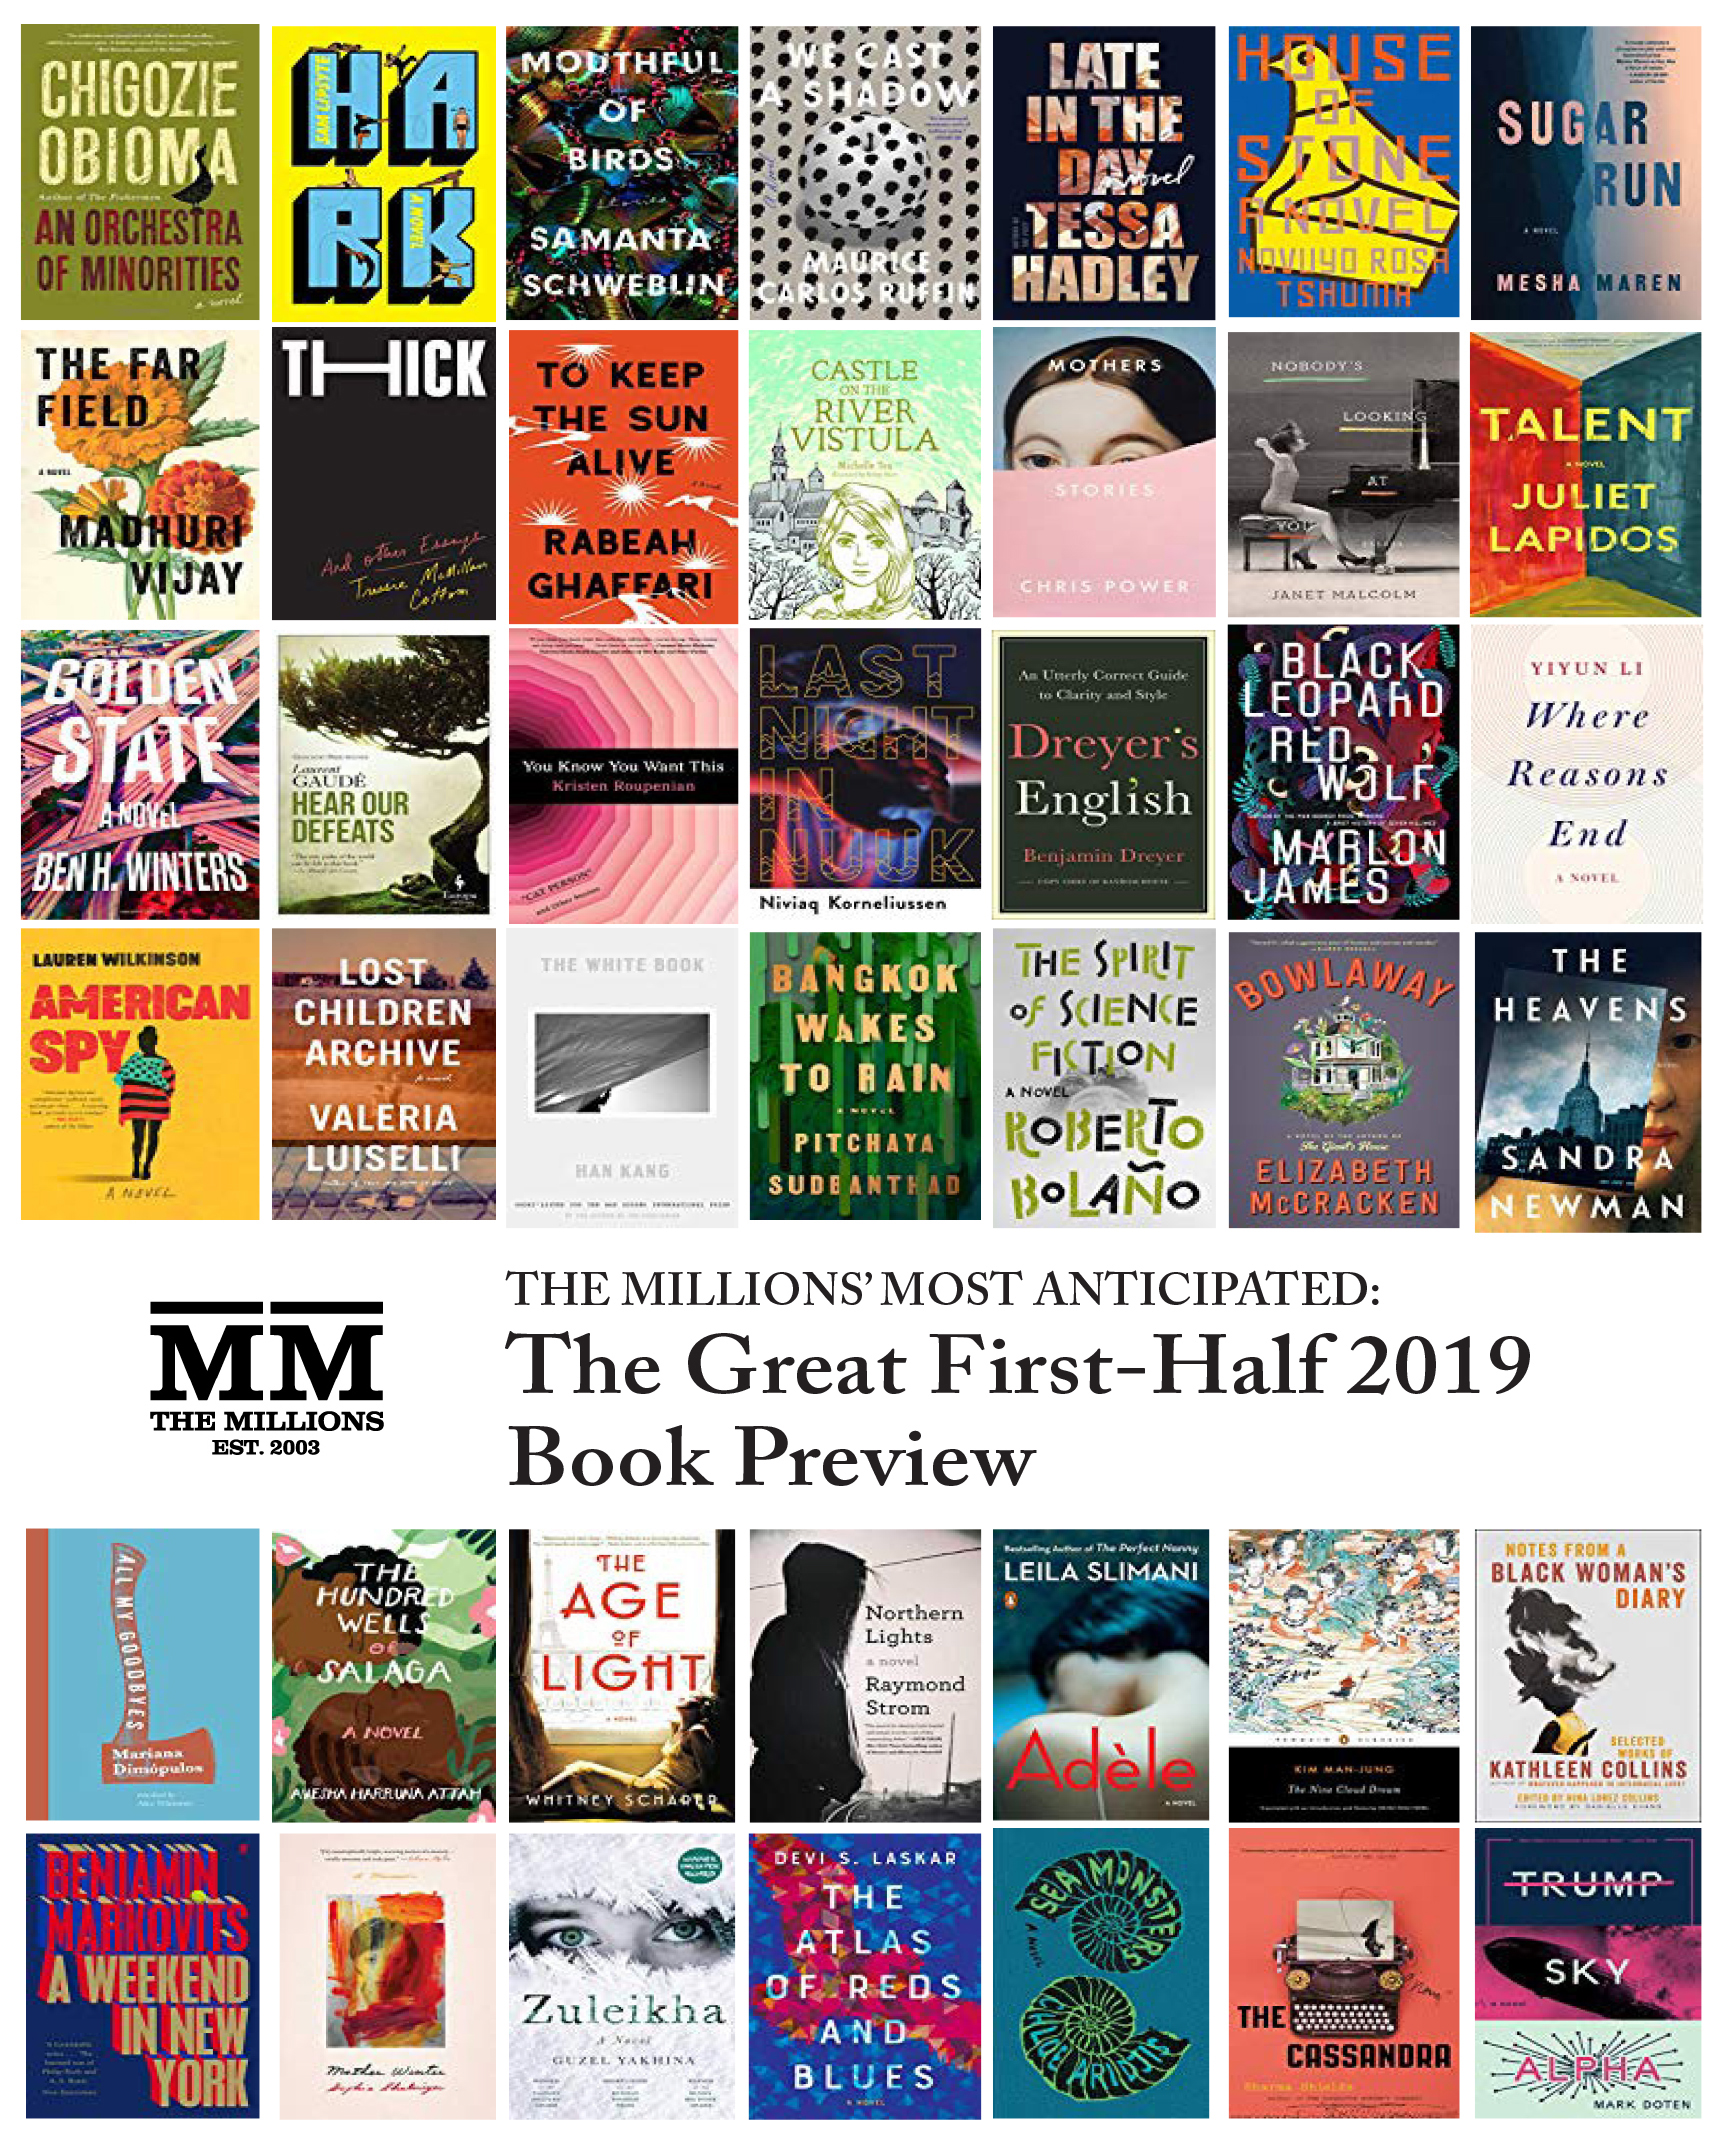 Most Anticipated The Great First Half 2019 Book Preview The